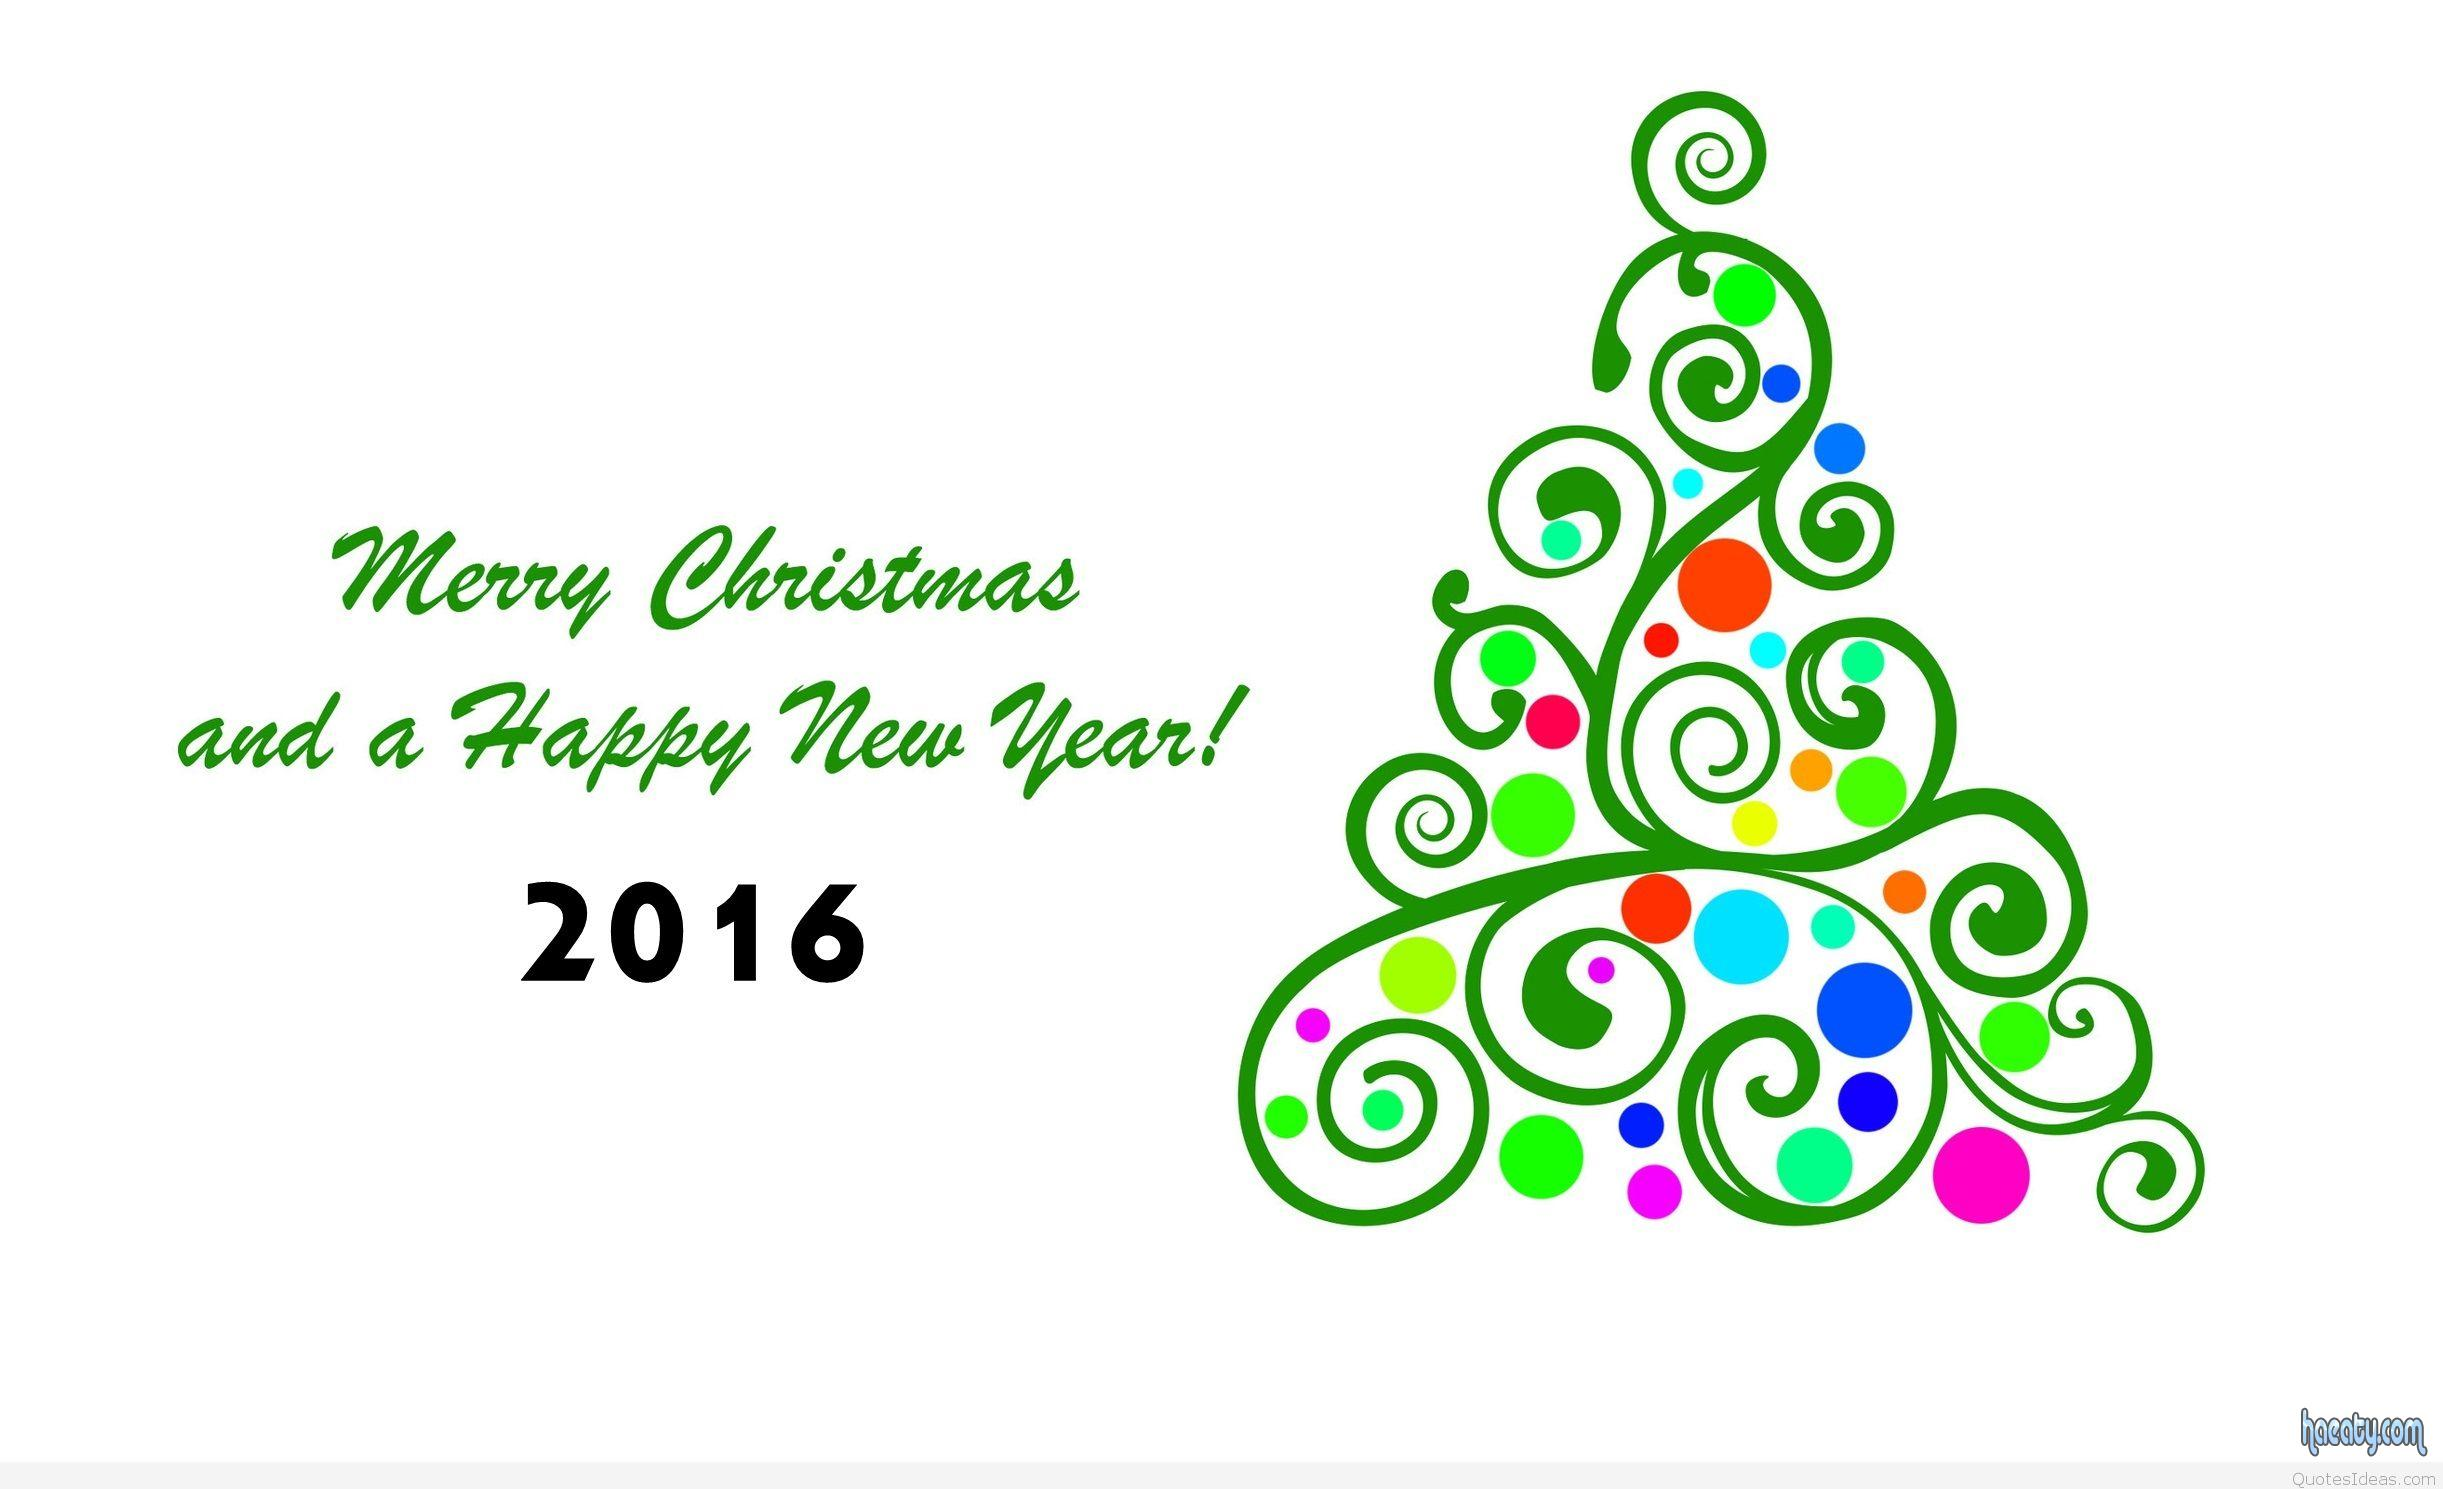 الكريسماس 2016-Merry-Christmas-and-Happy-new-year-2016 1450540134081.jpg